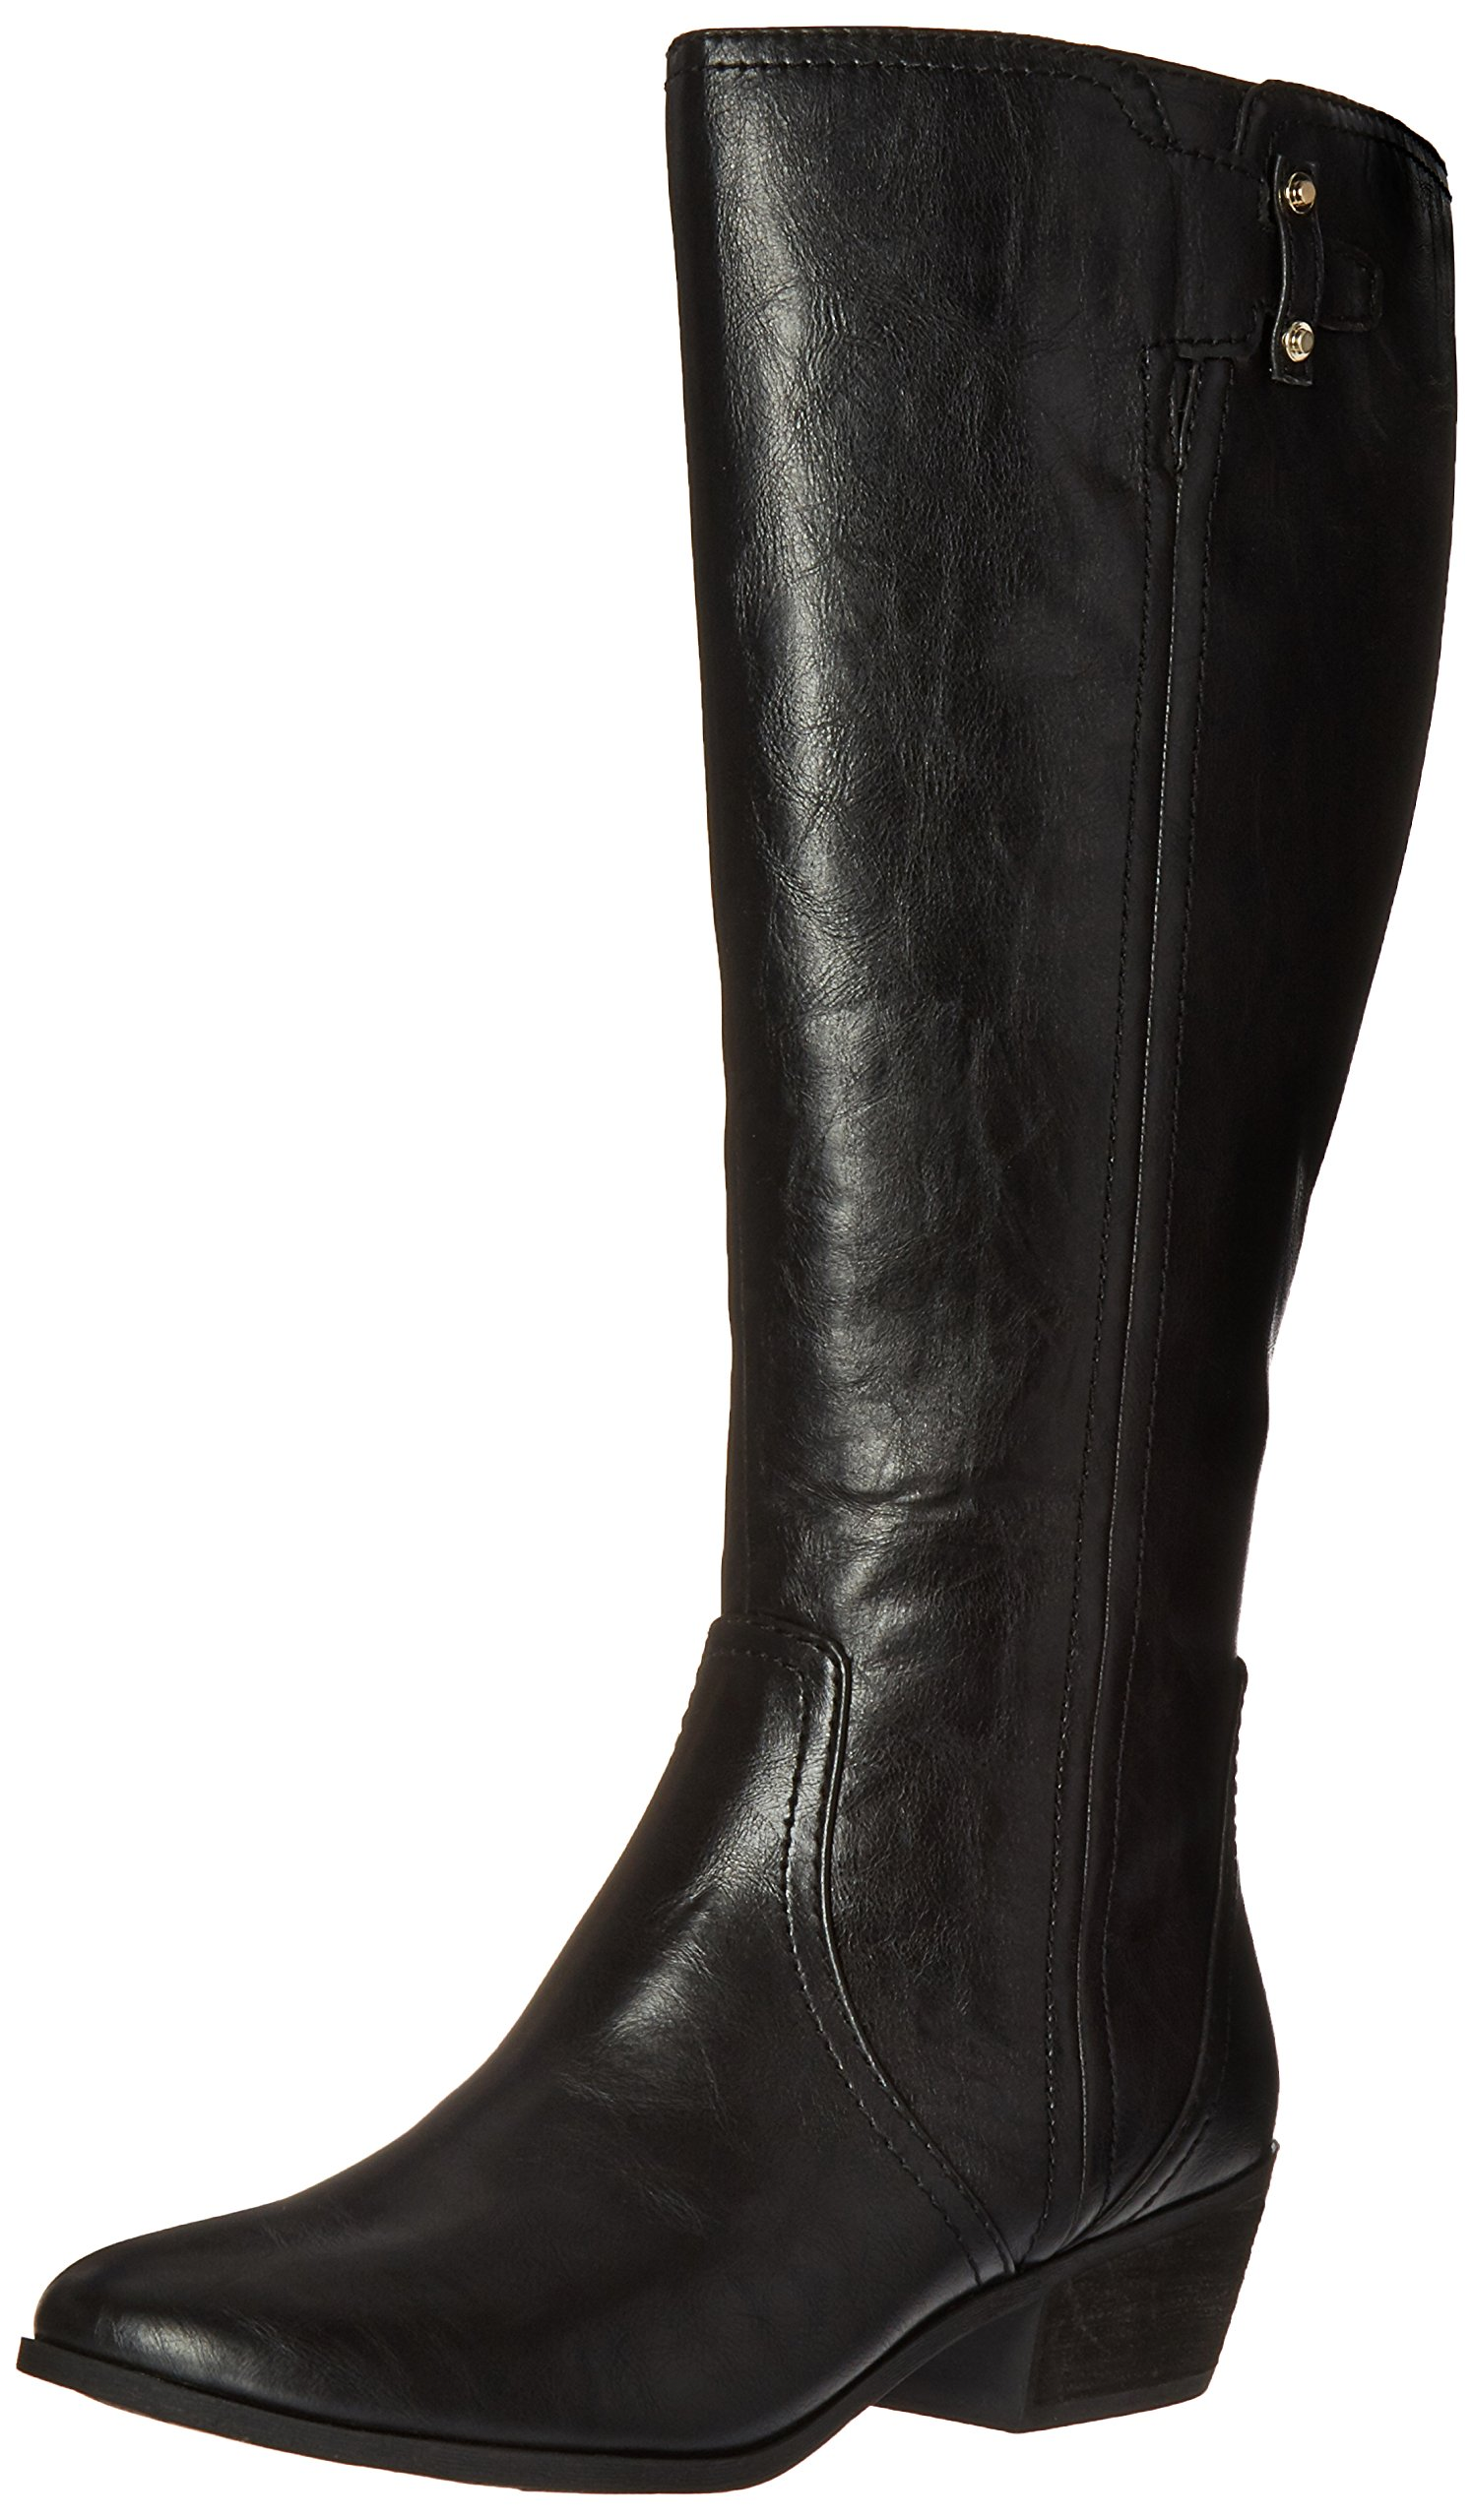 Dr. Scholl's Women's Brilliance Wide Calf Riding Boot, Black, 11 M US